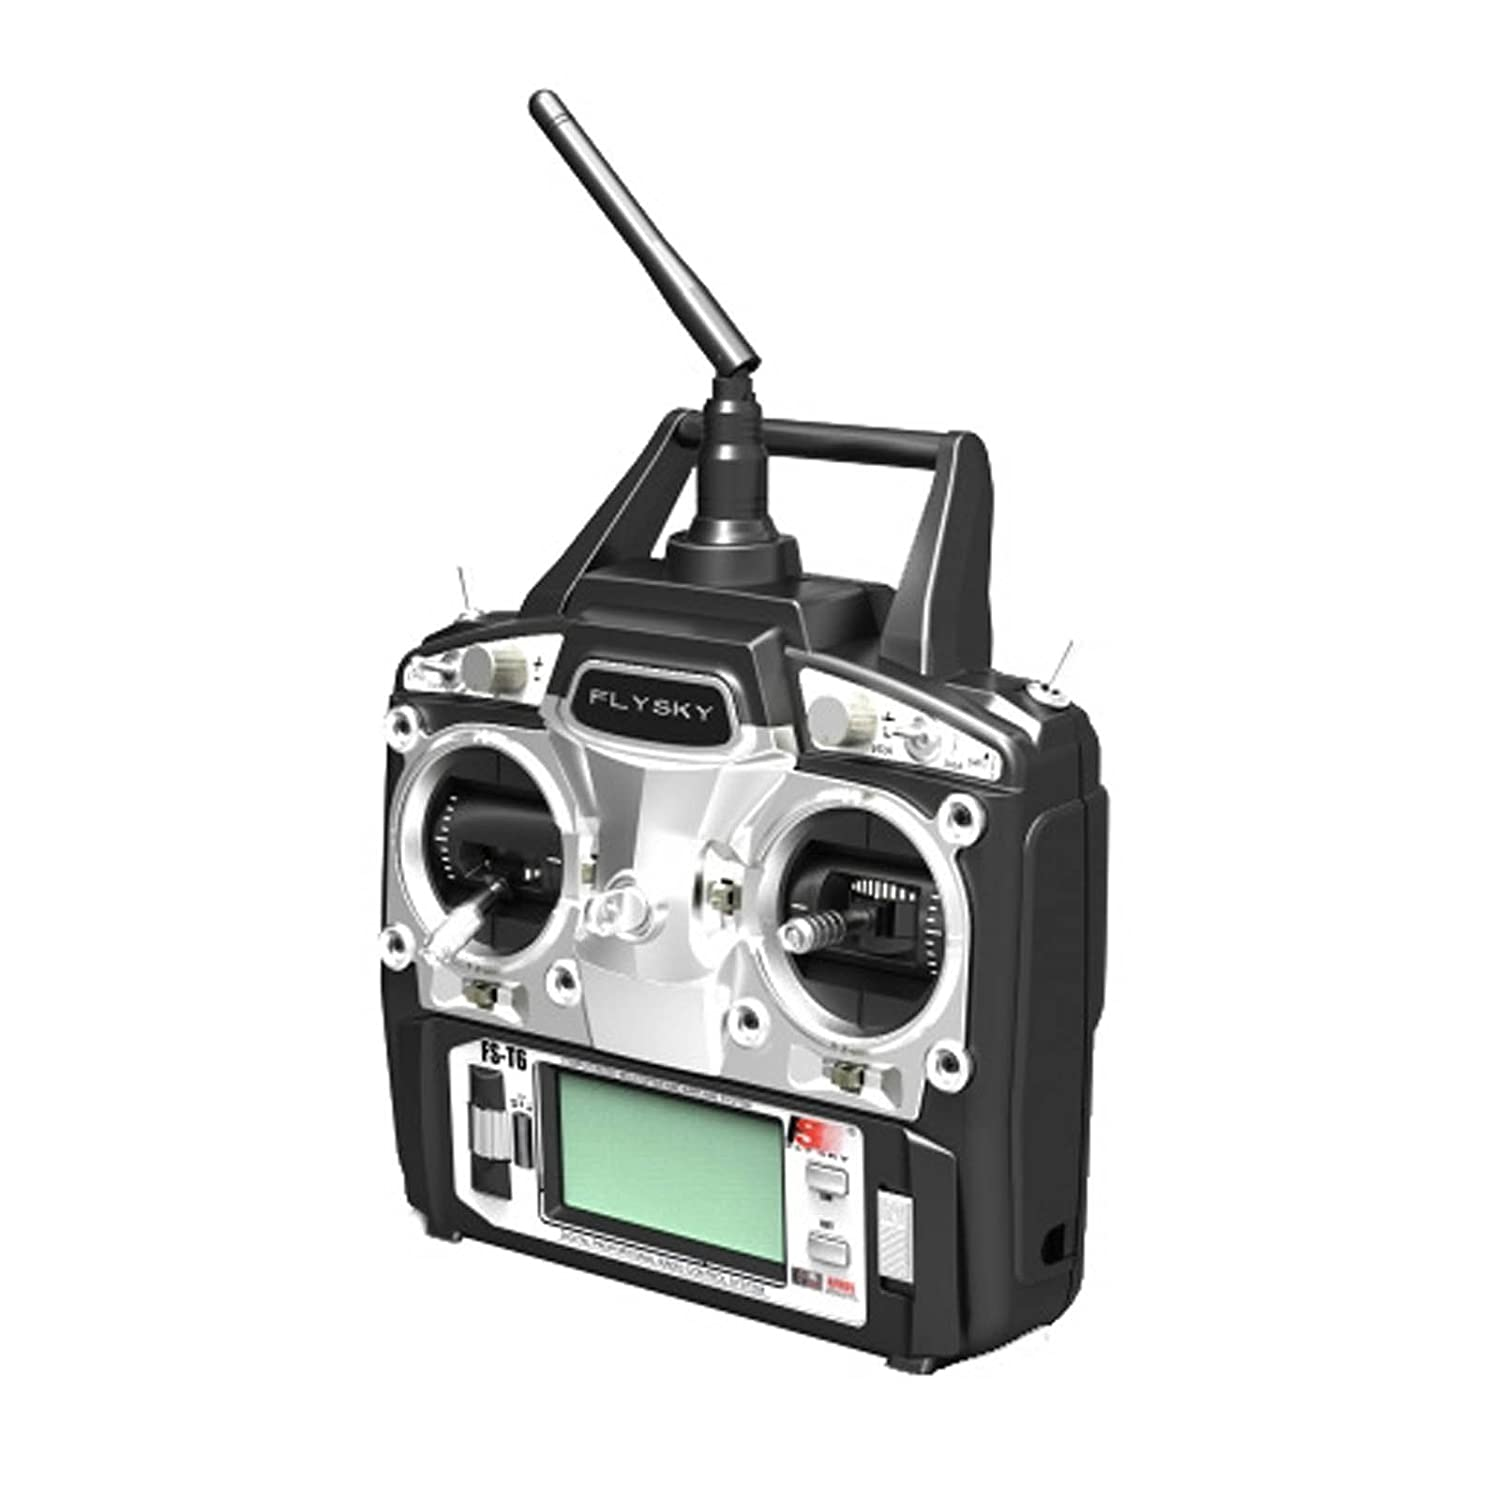 Flysky 24ghz 6 Channel Digital Transmitter And Receiver Tips On Powering Rc Servos Receivers Radios Vehicles With Lipos Radio System Toys Games